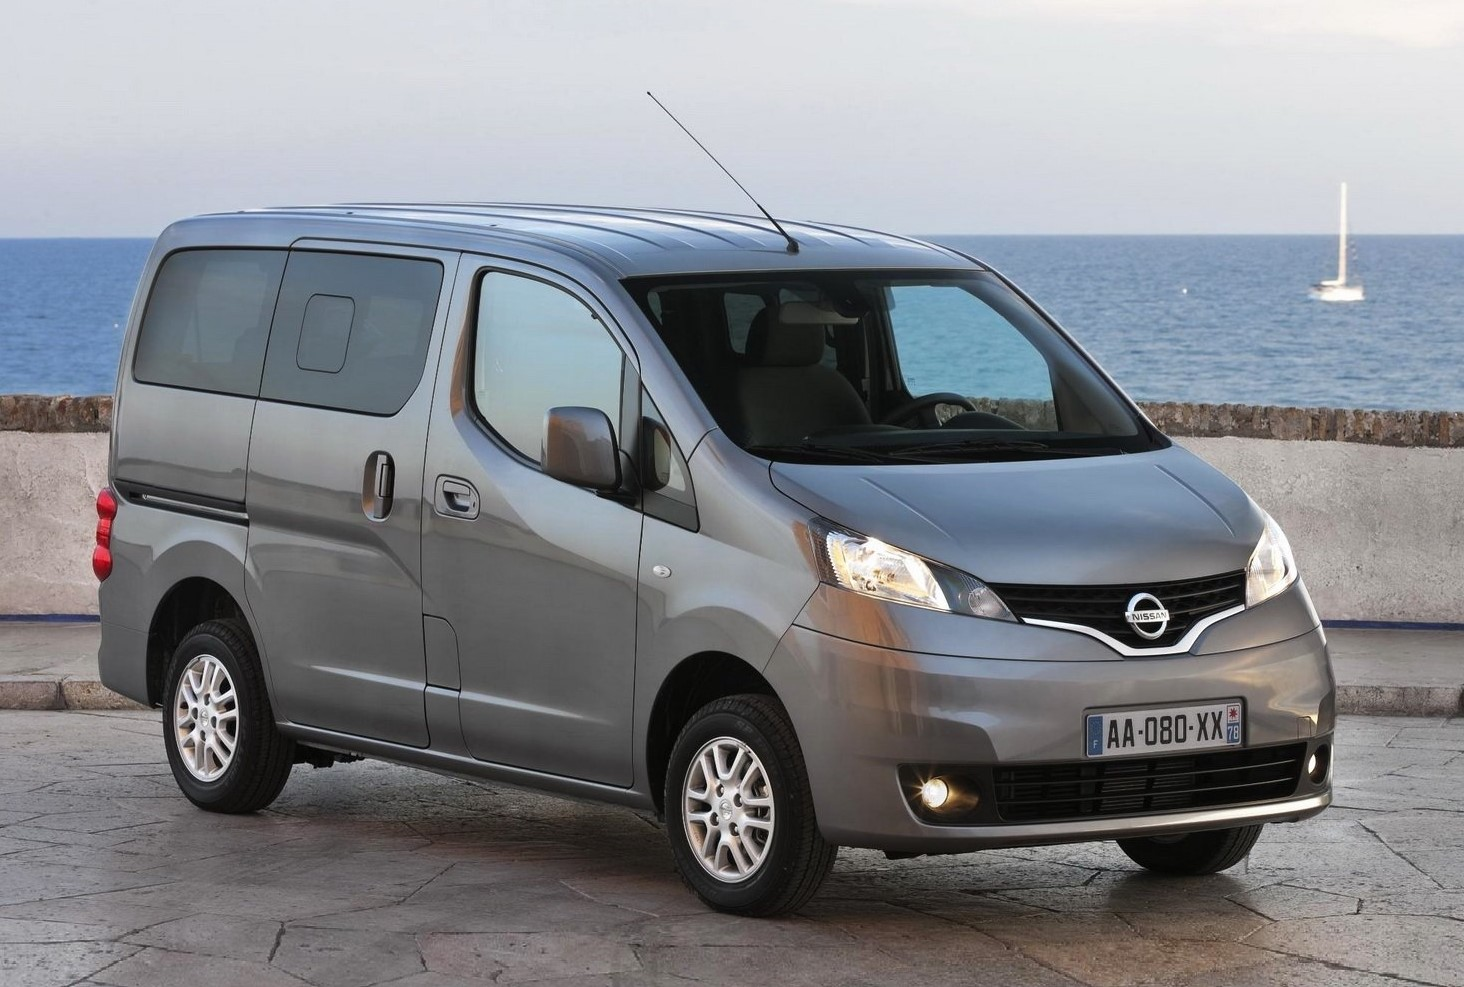 Nissan Evalia (or similar)